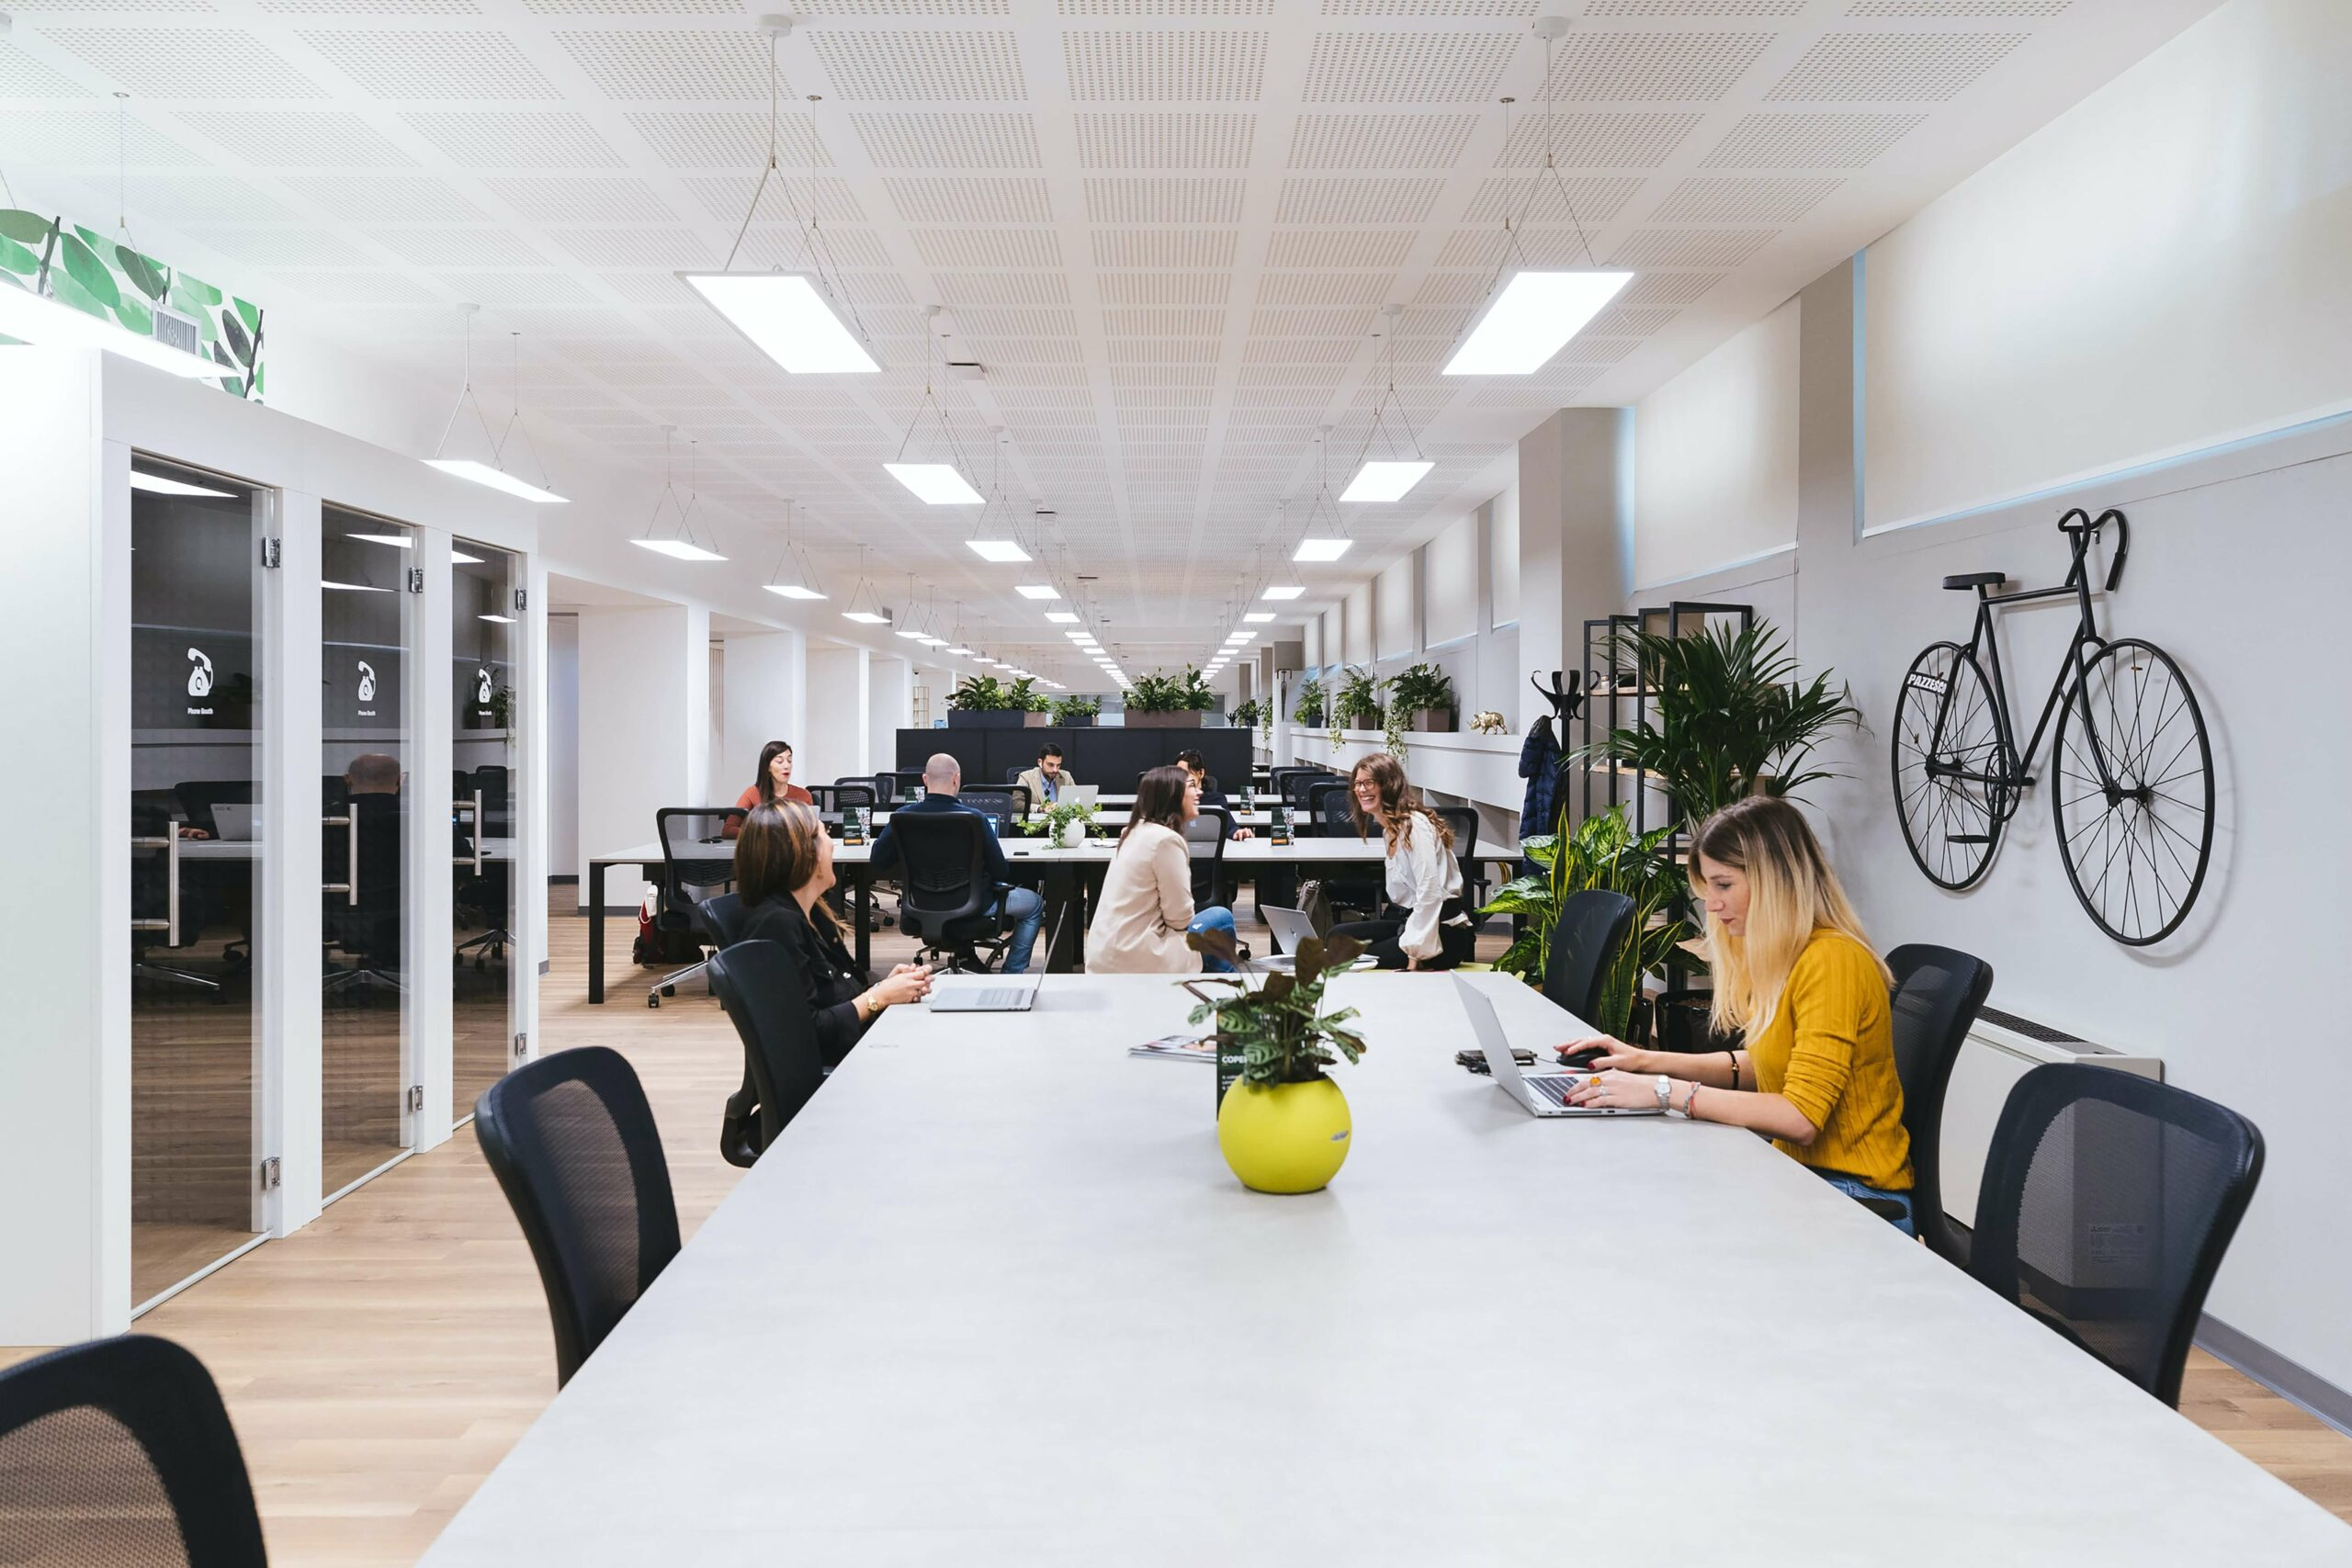 Best Coworking Spaces in Kolkata With Ideal Workspace Environment